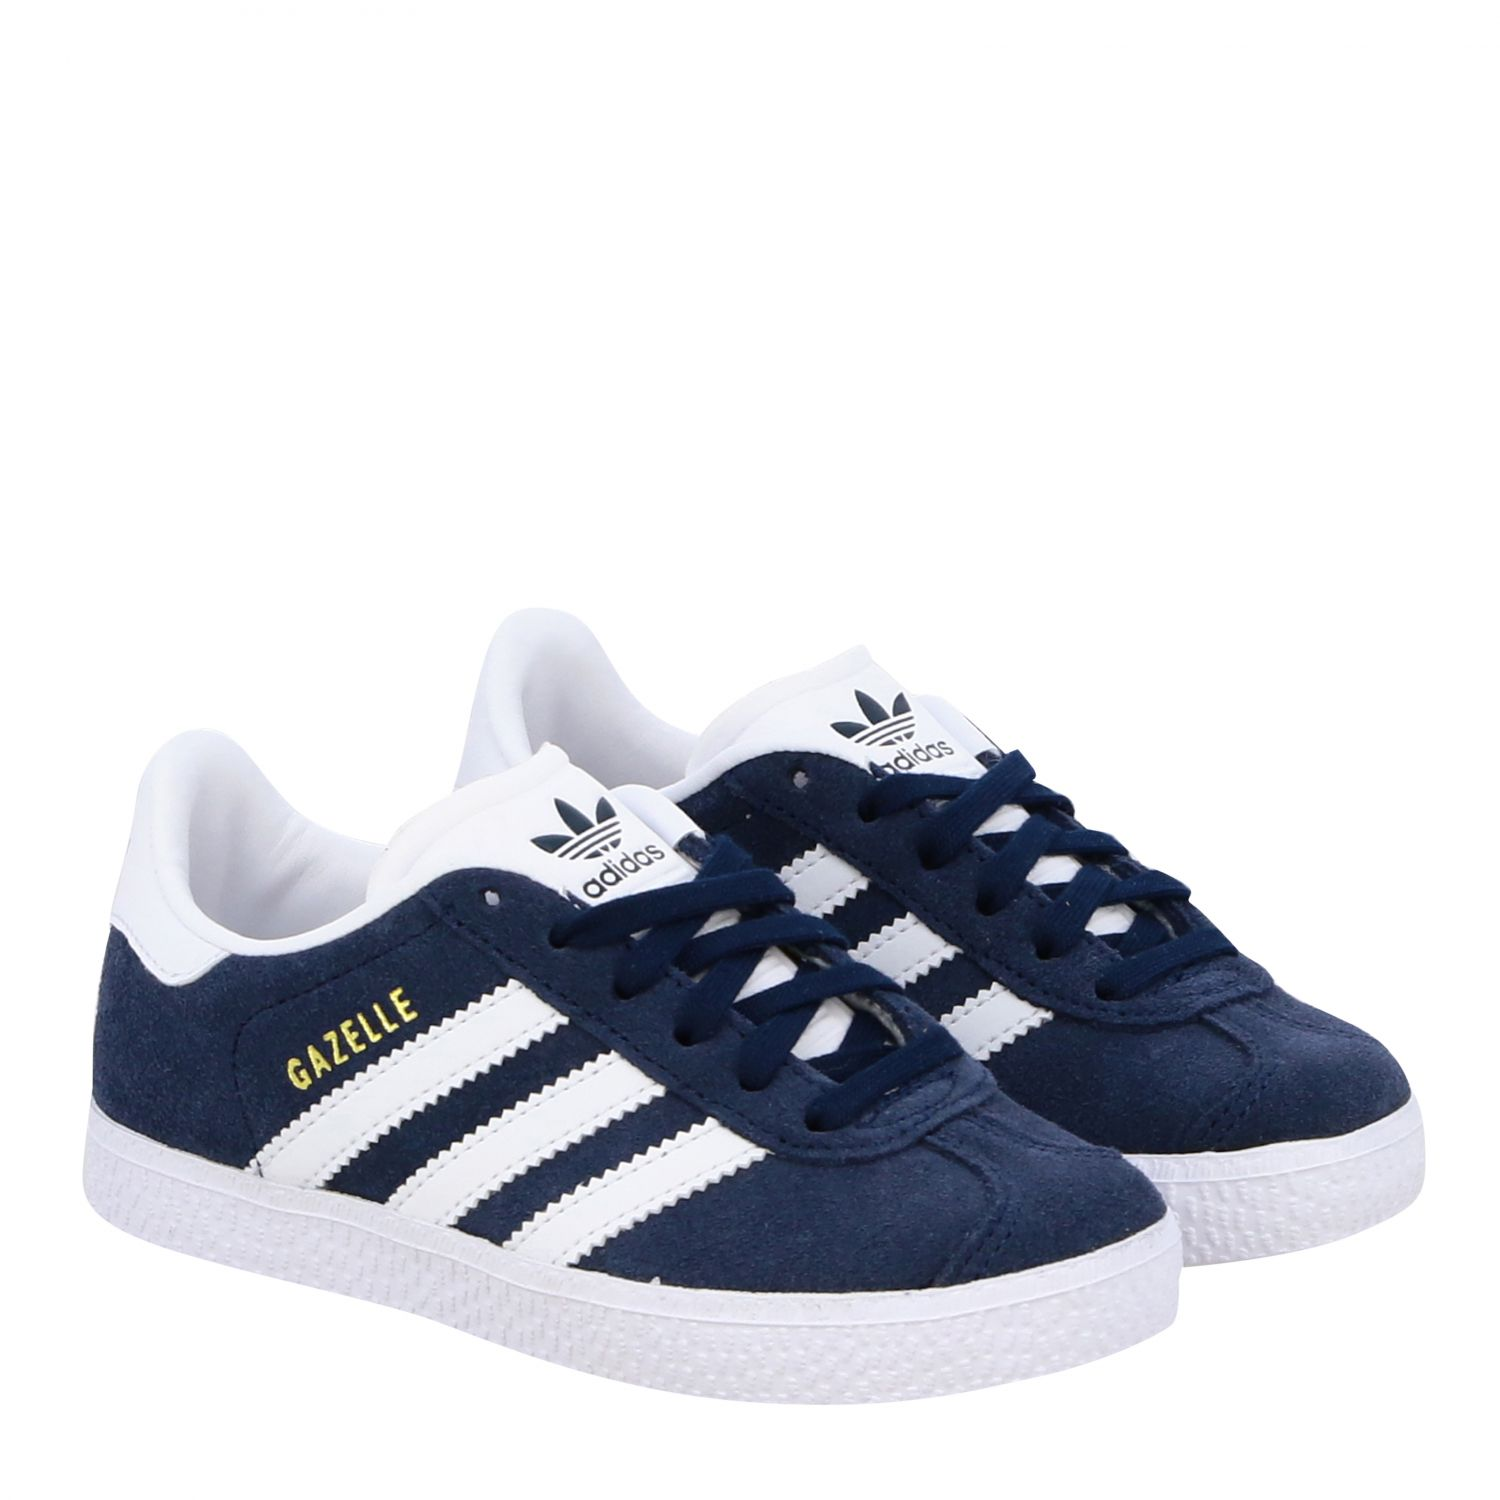 Shoes Adidas Originals: Gazelle C Adidas Originals sneakers in suede and leather blue 2